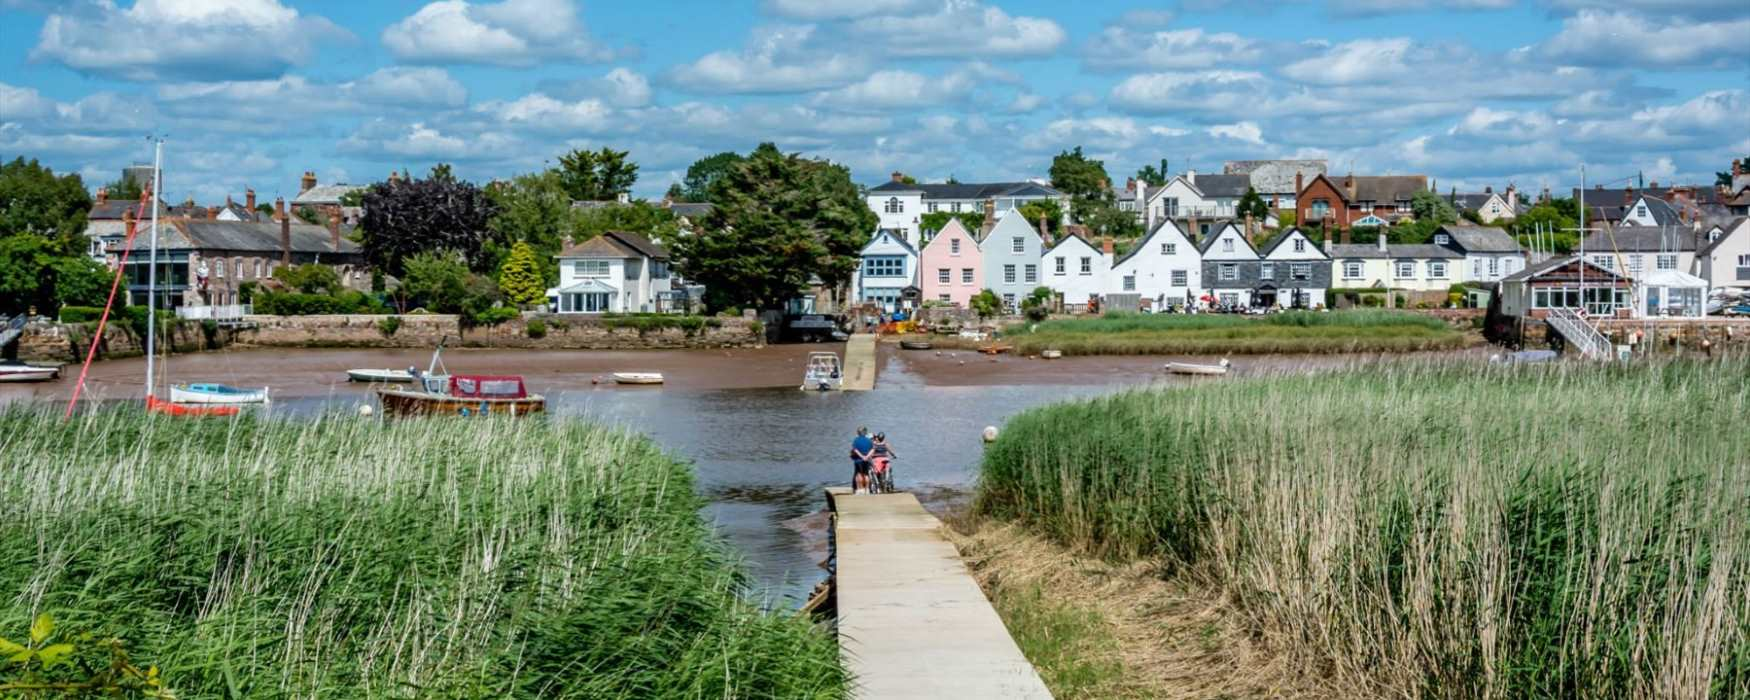 Exe Estuary Trail at Topsham (c) Jan Penny